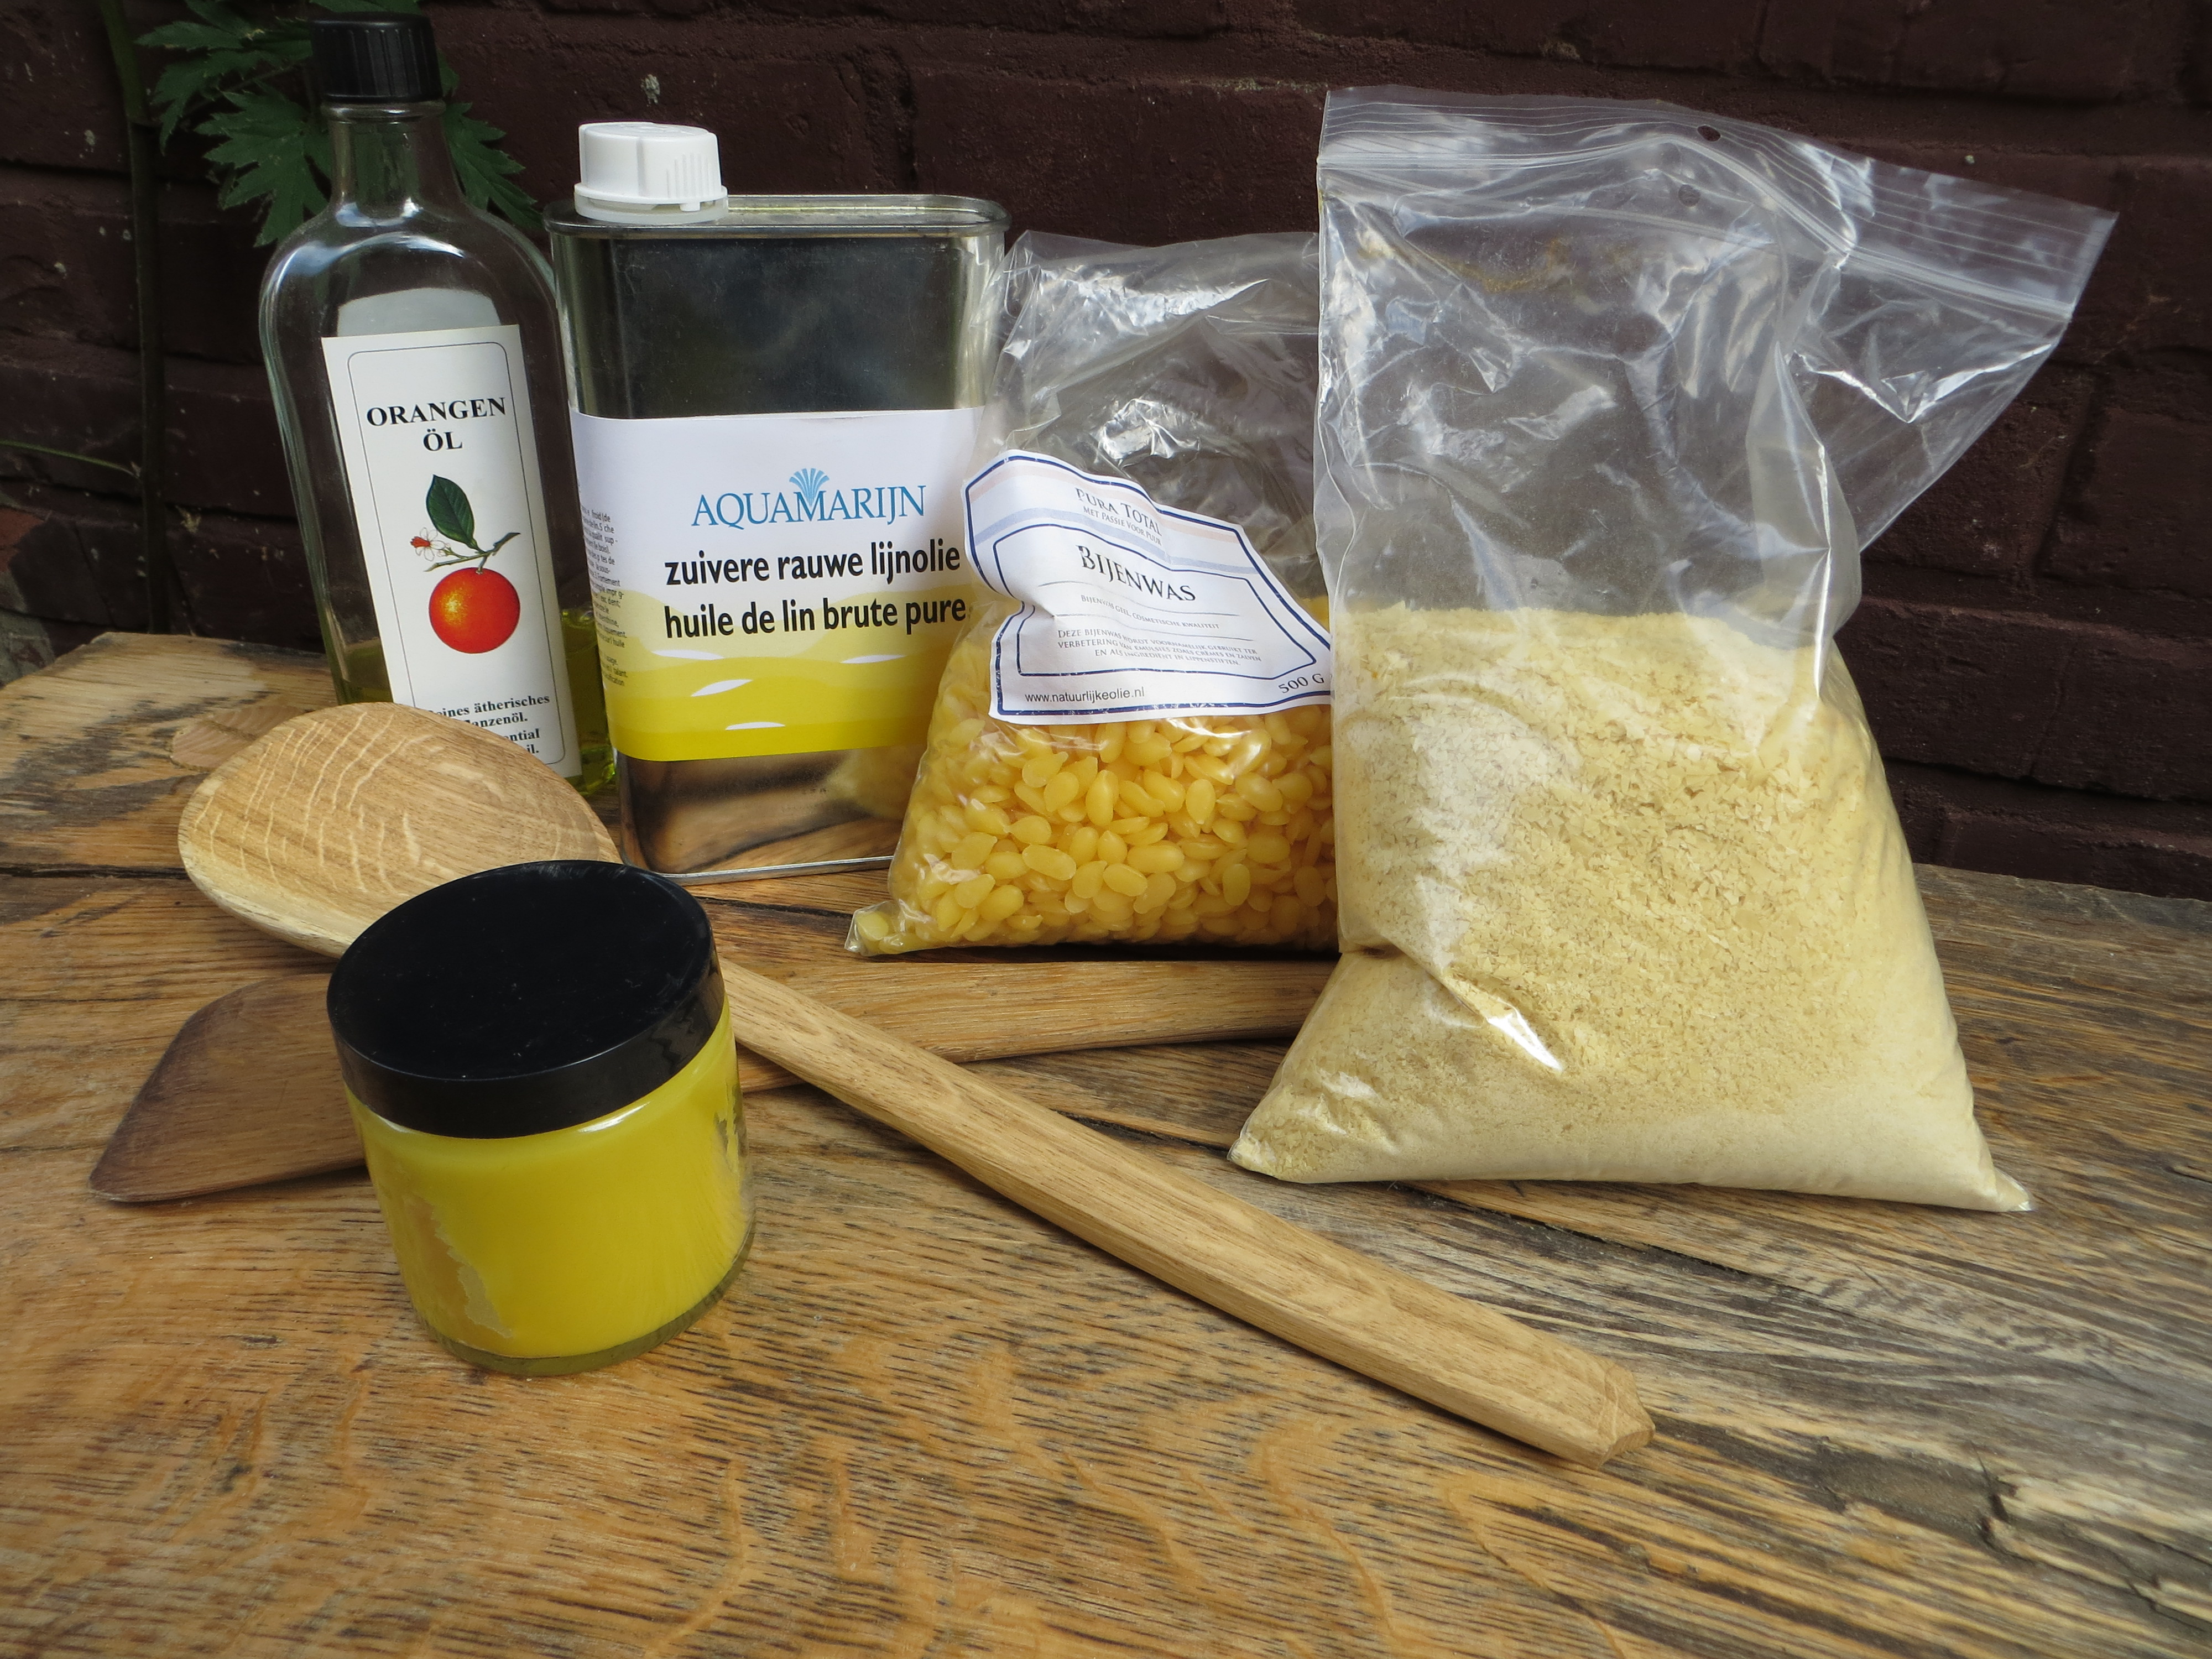 Food safe wax for spoons and suchLivius Crafts | Livius Crafts